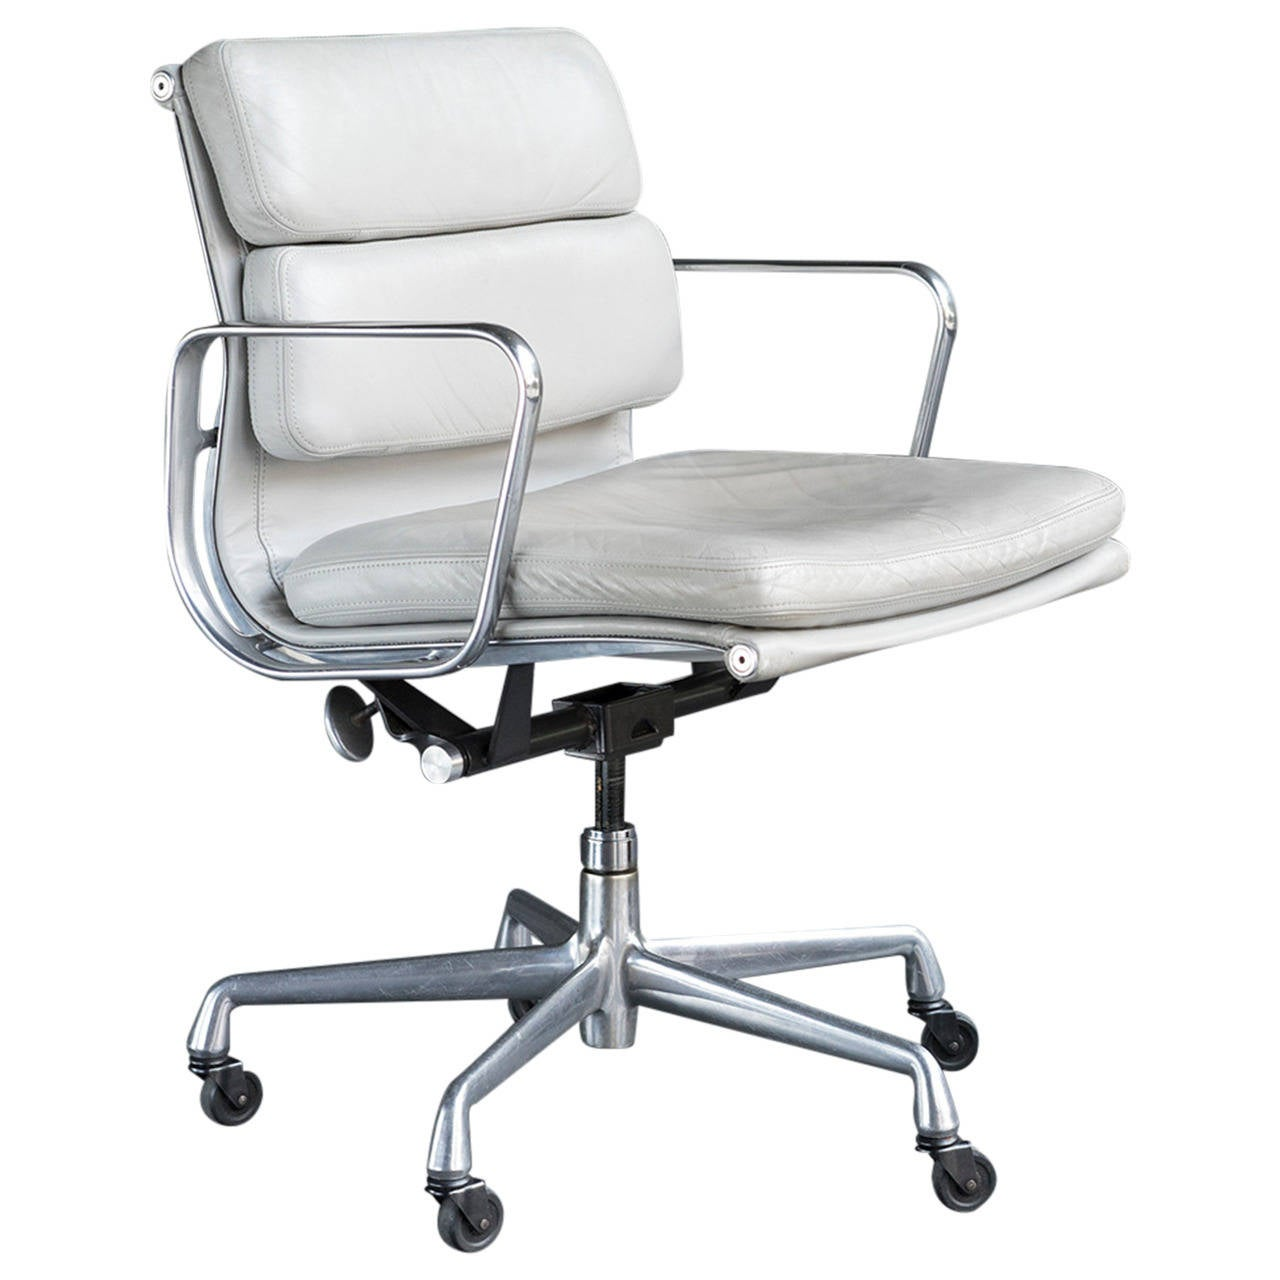 Eames Soft Pad Management Chair At 1stdibs